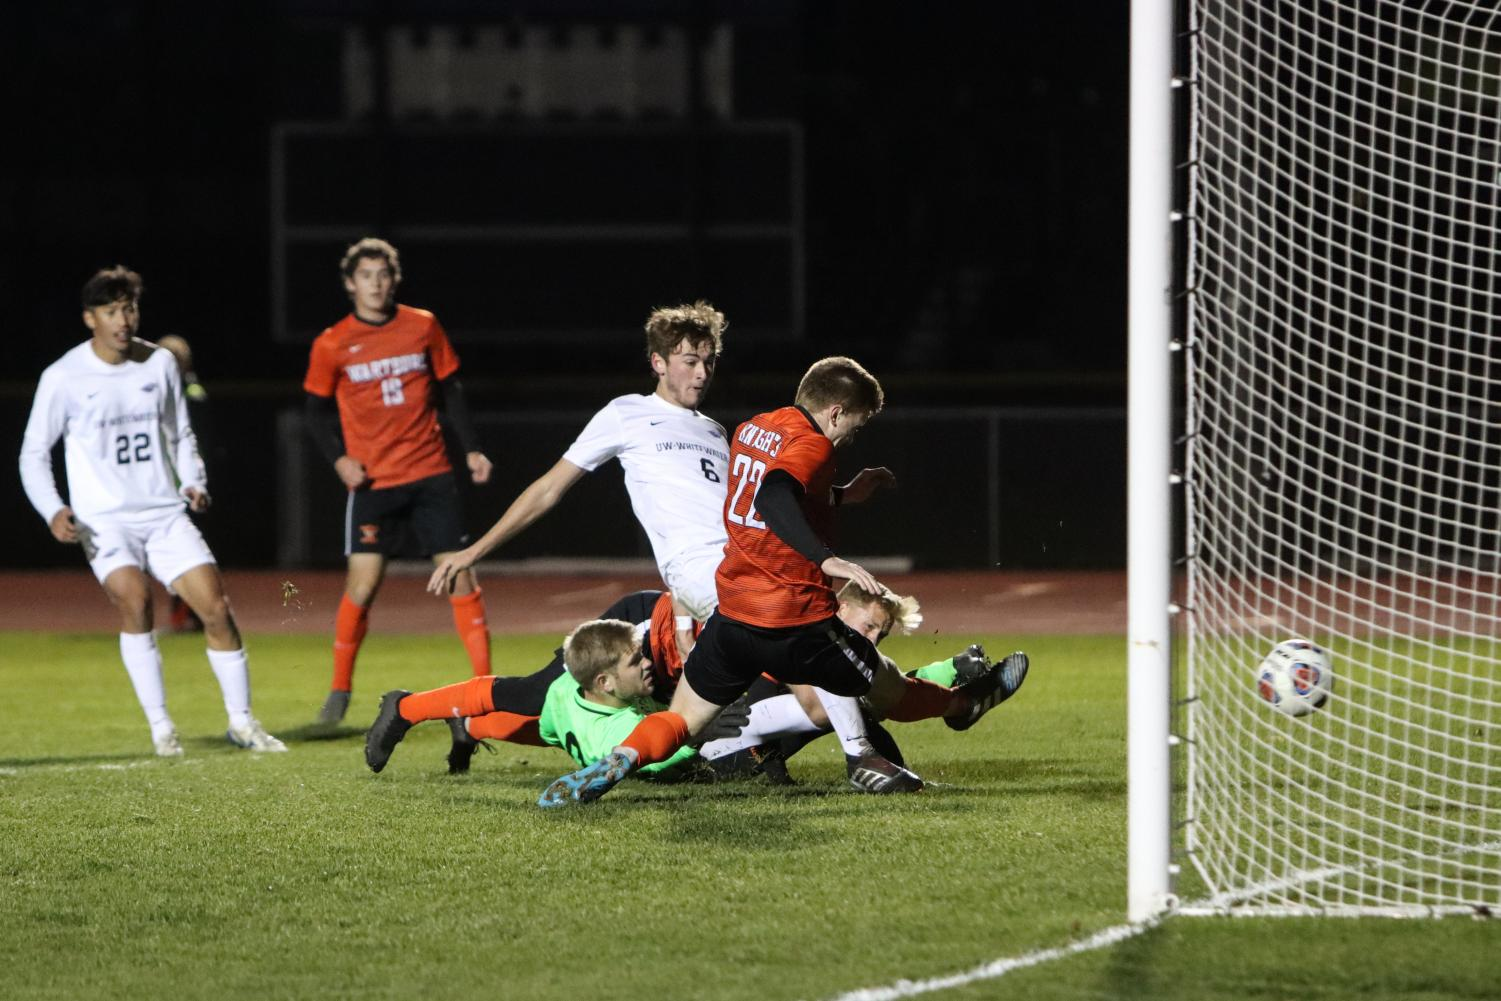 After a Goulmouth scramble, Mariano Carini puts the ball into the net for the Warhawks.